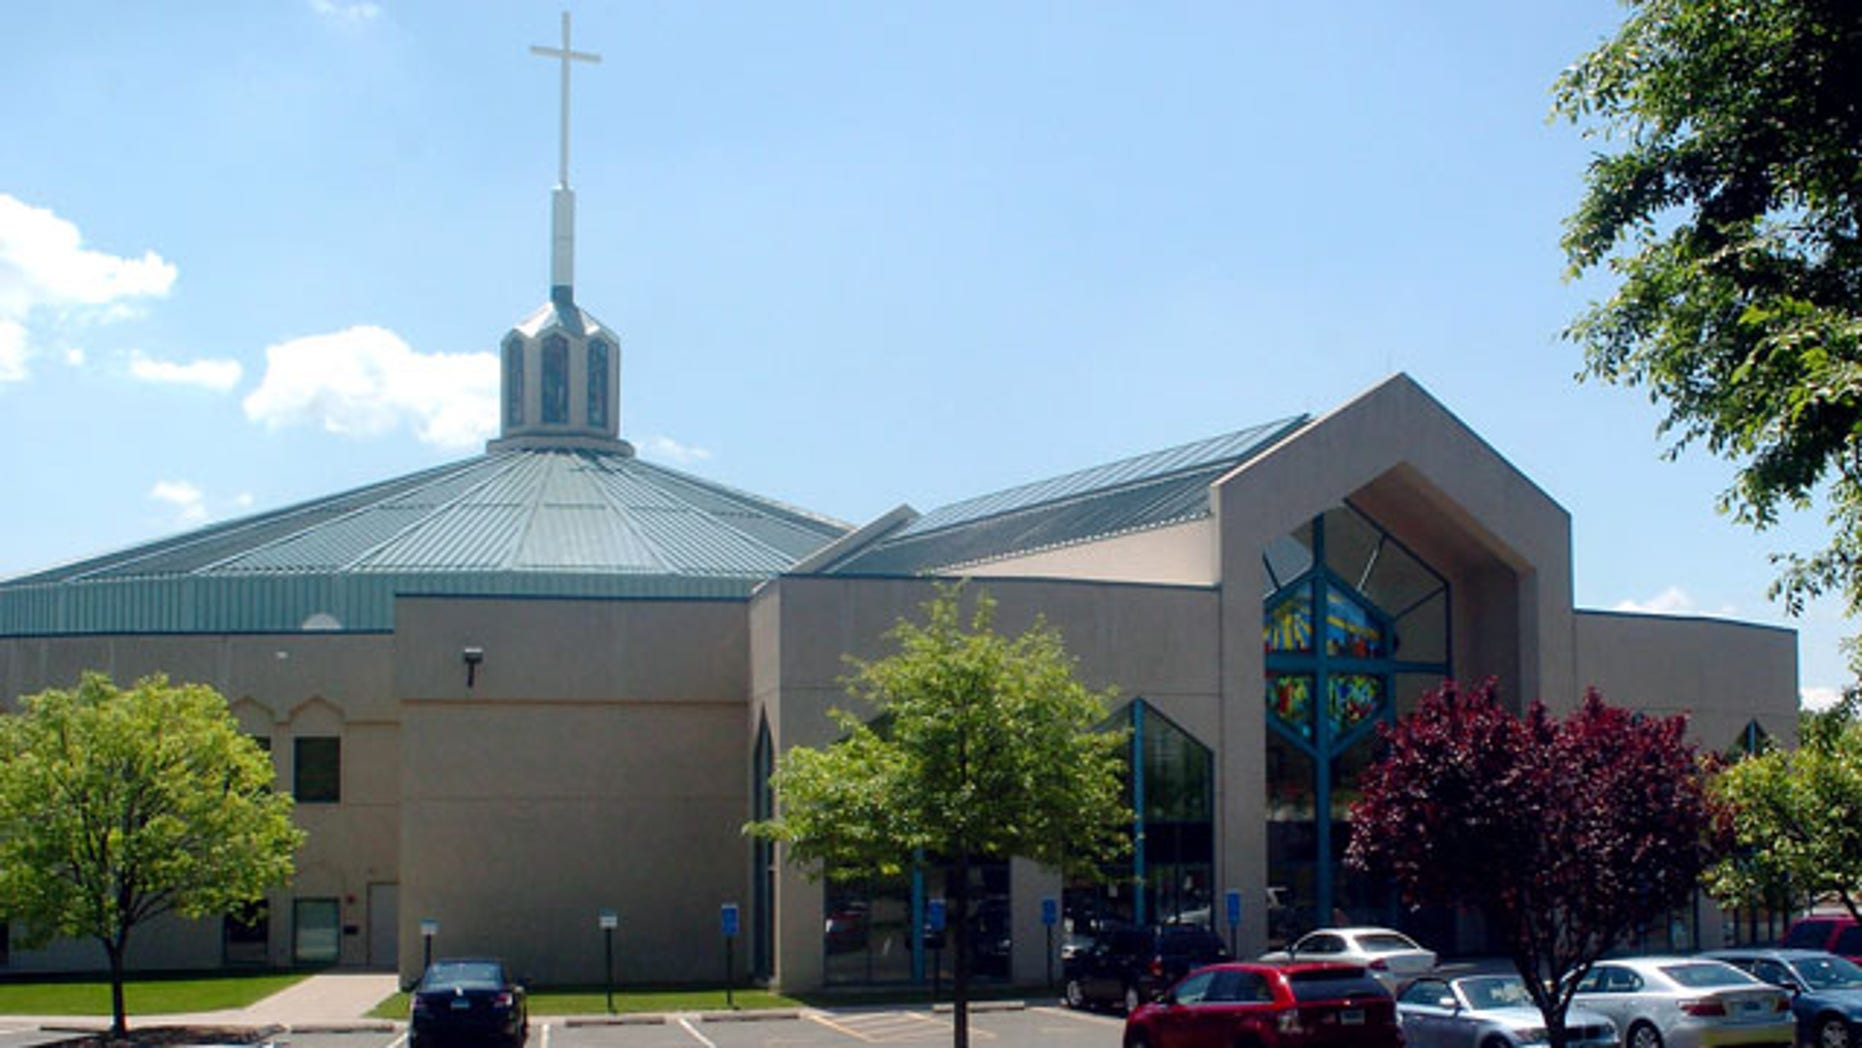 May 16: . A federal court judge has ruled two Connecticut public high schools can't hold their graduations inside The First Cathedral in Bloomfield, Conn., saying it's an unconstitutional endorsement of religion. (AP)